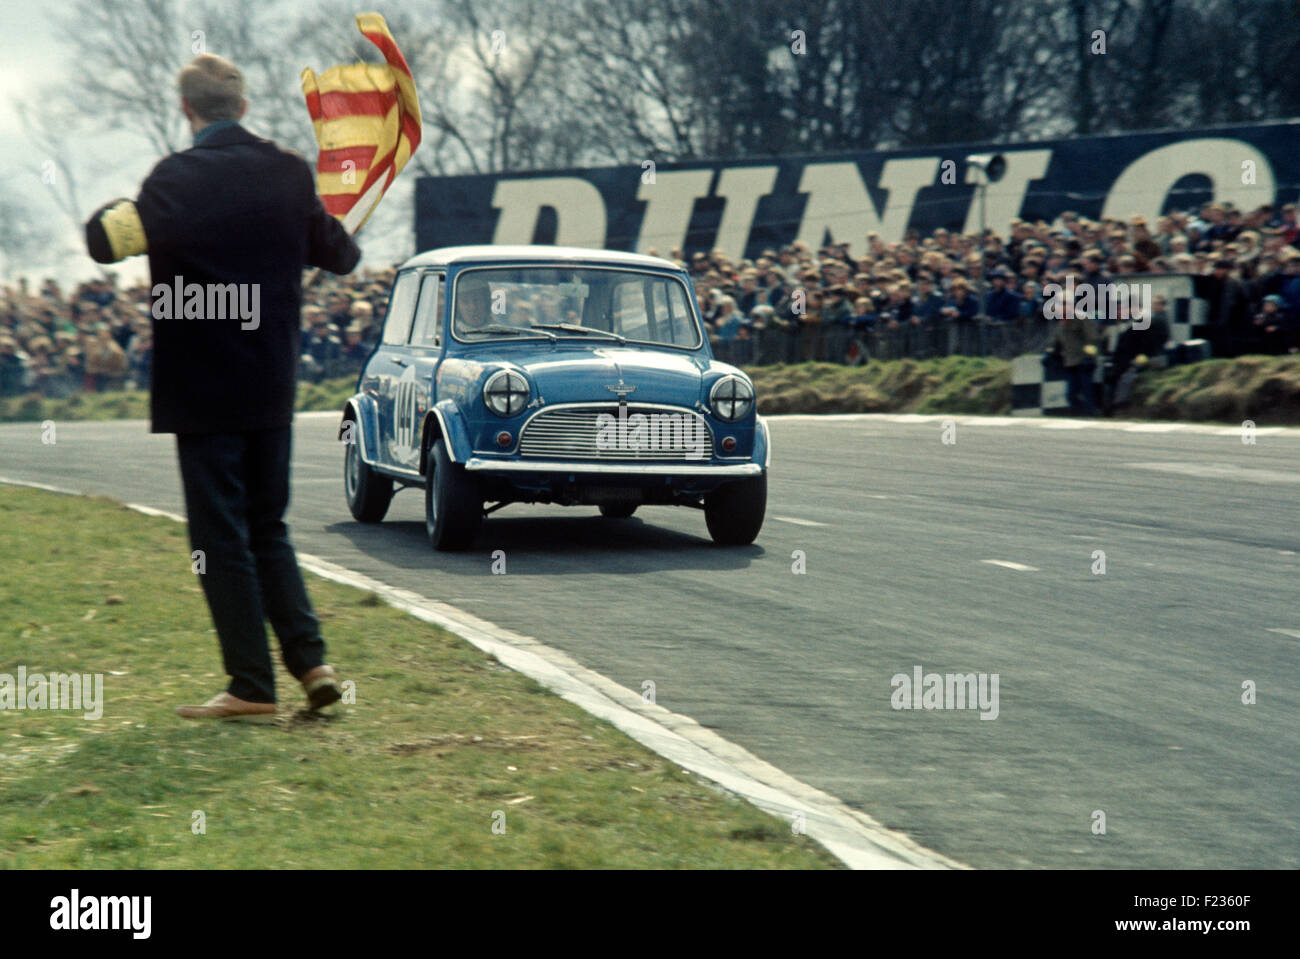 Marshal waving an oil flag at Gordon Spice in an Austin Mini Cooper, Race of Champions Trophy, Guards Trophy, 17 - Stock Image